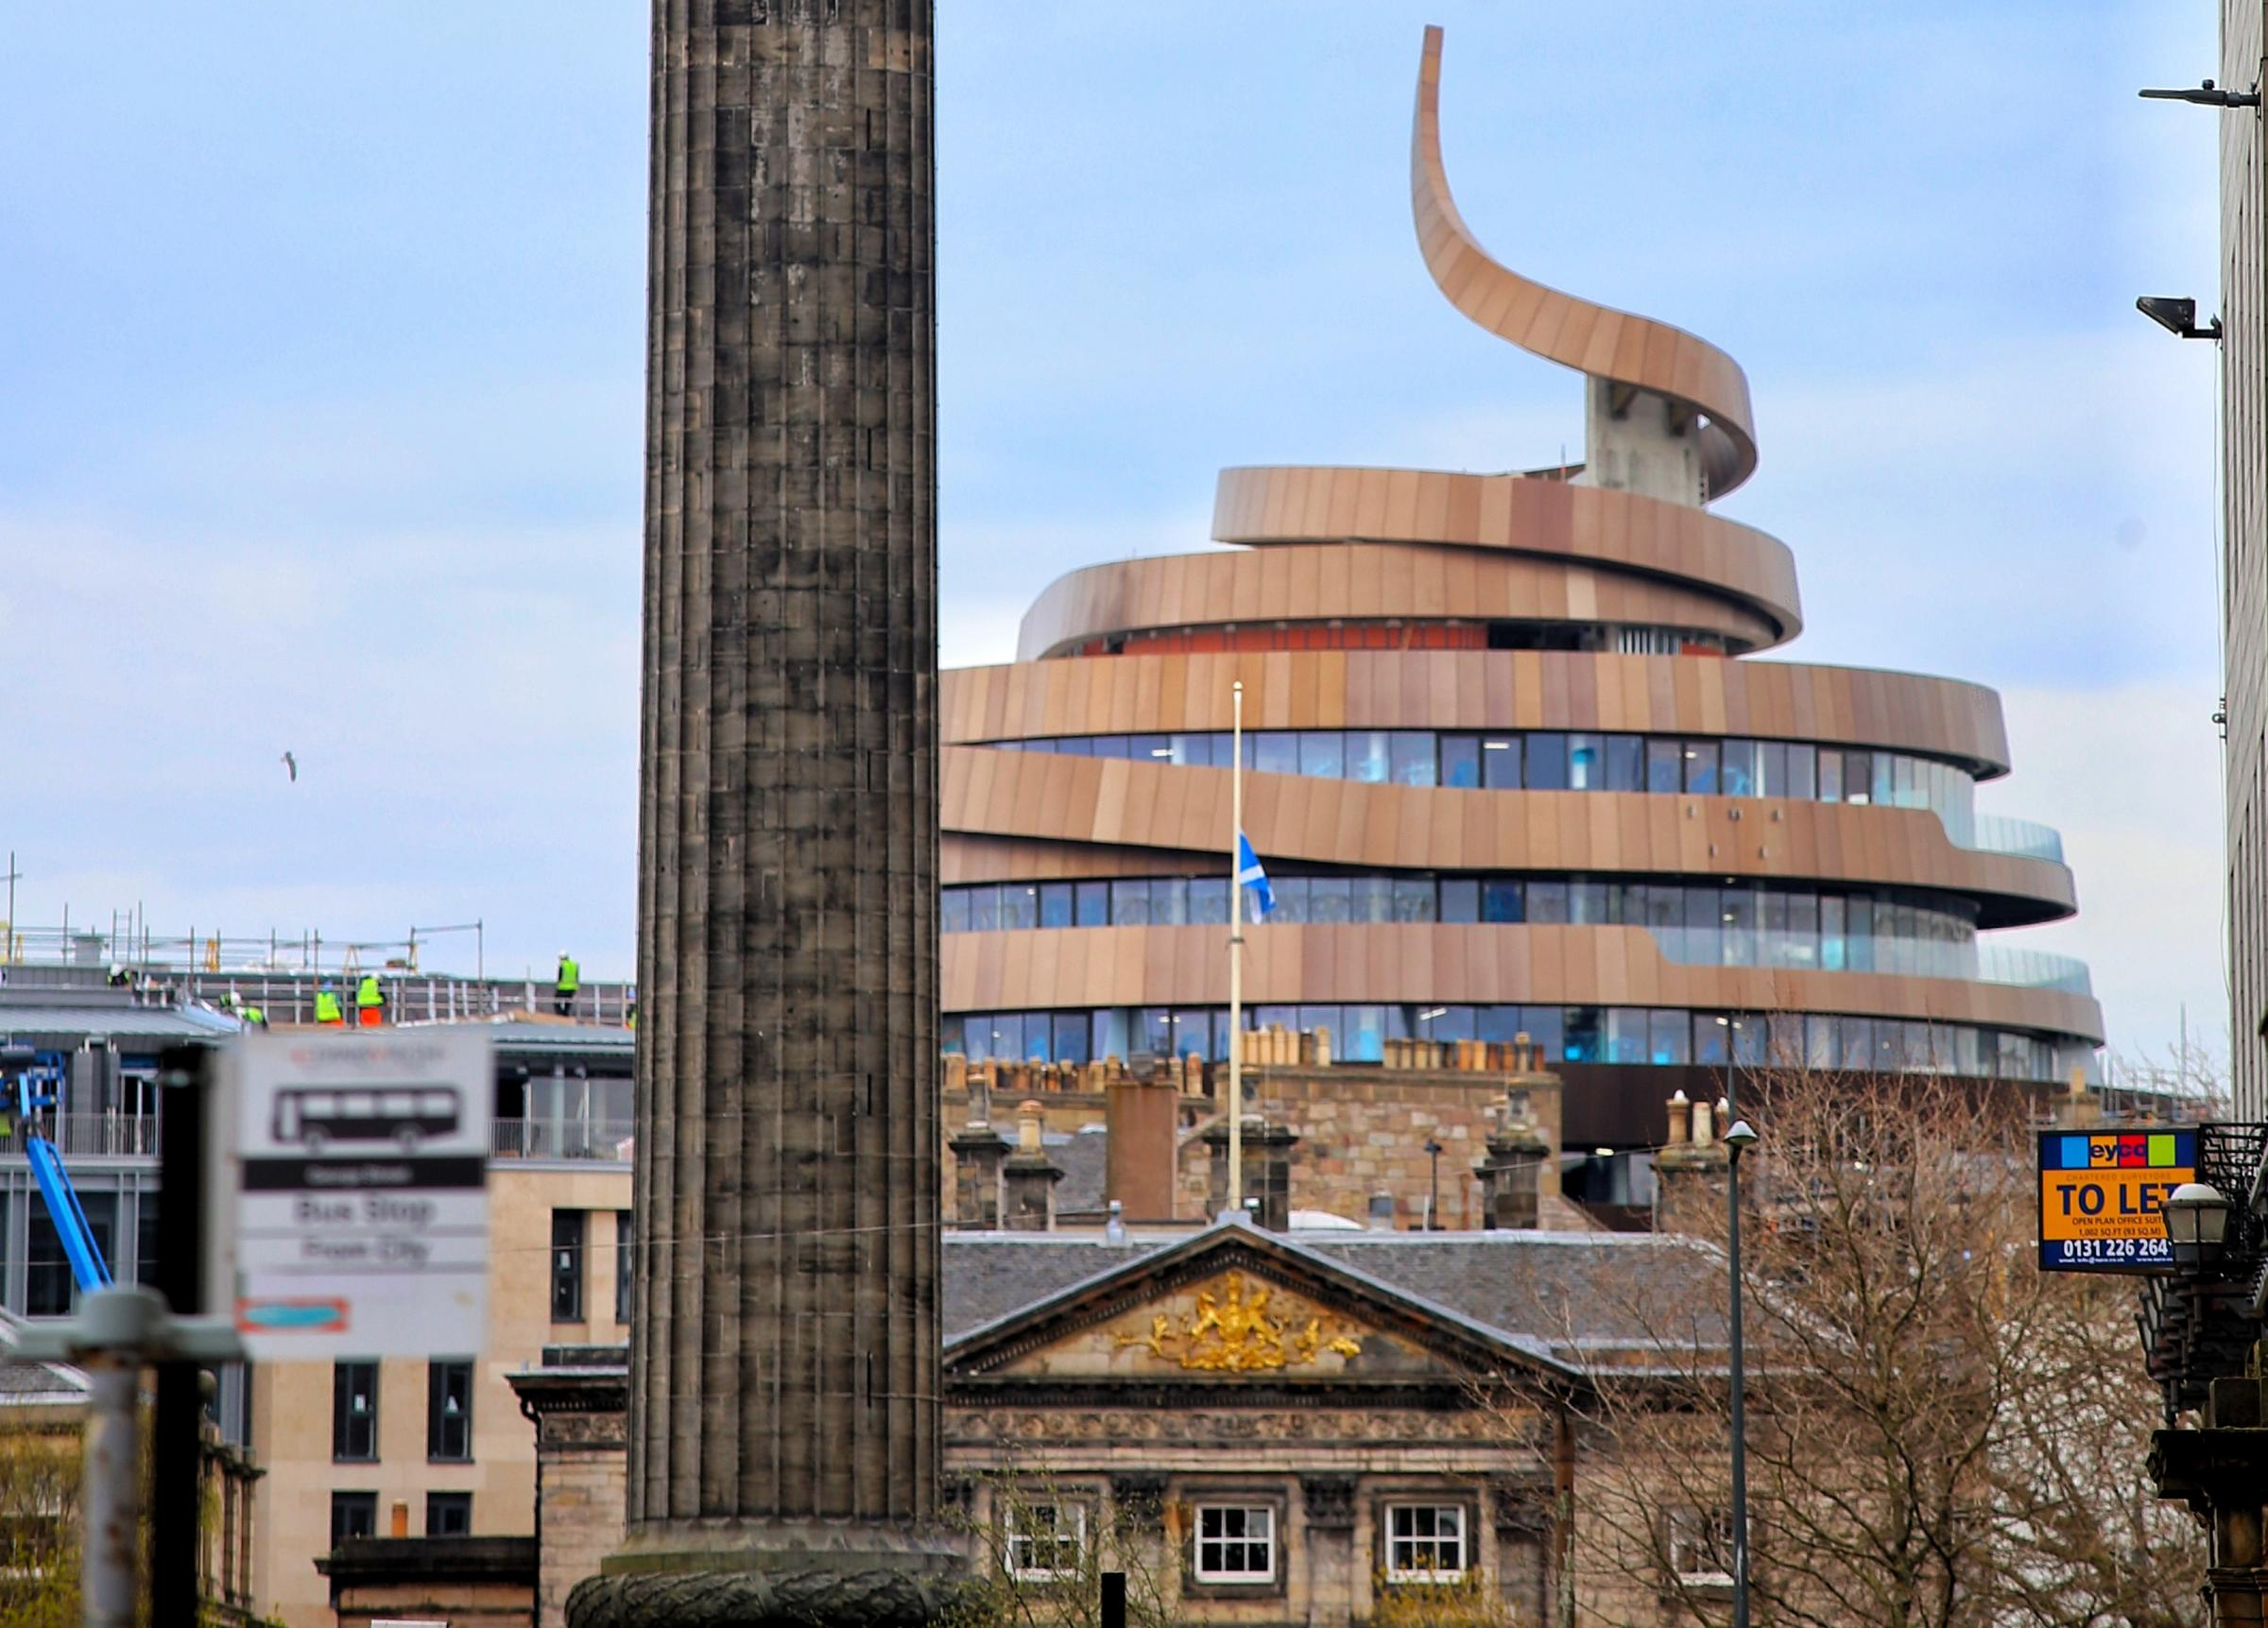 Store Wars: Can Edinburgh take Glasgow's retail crown with new openings